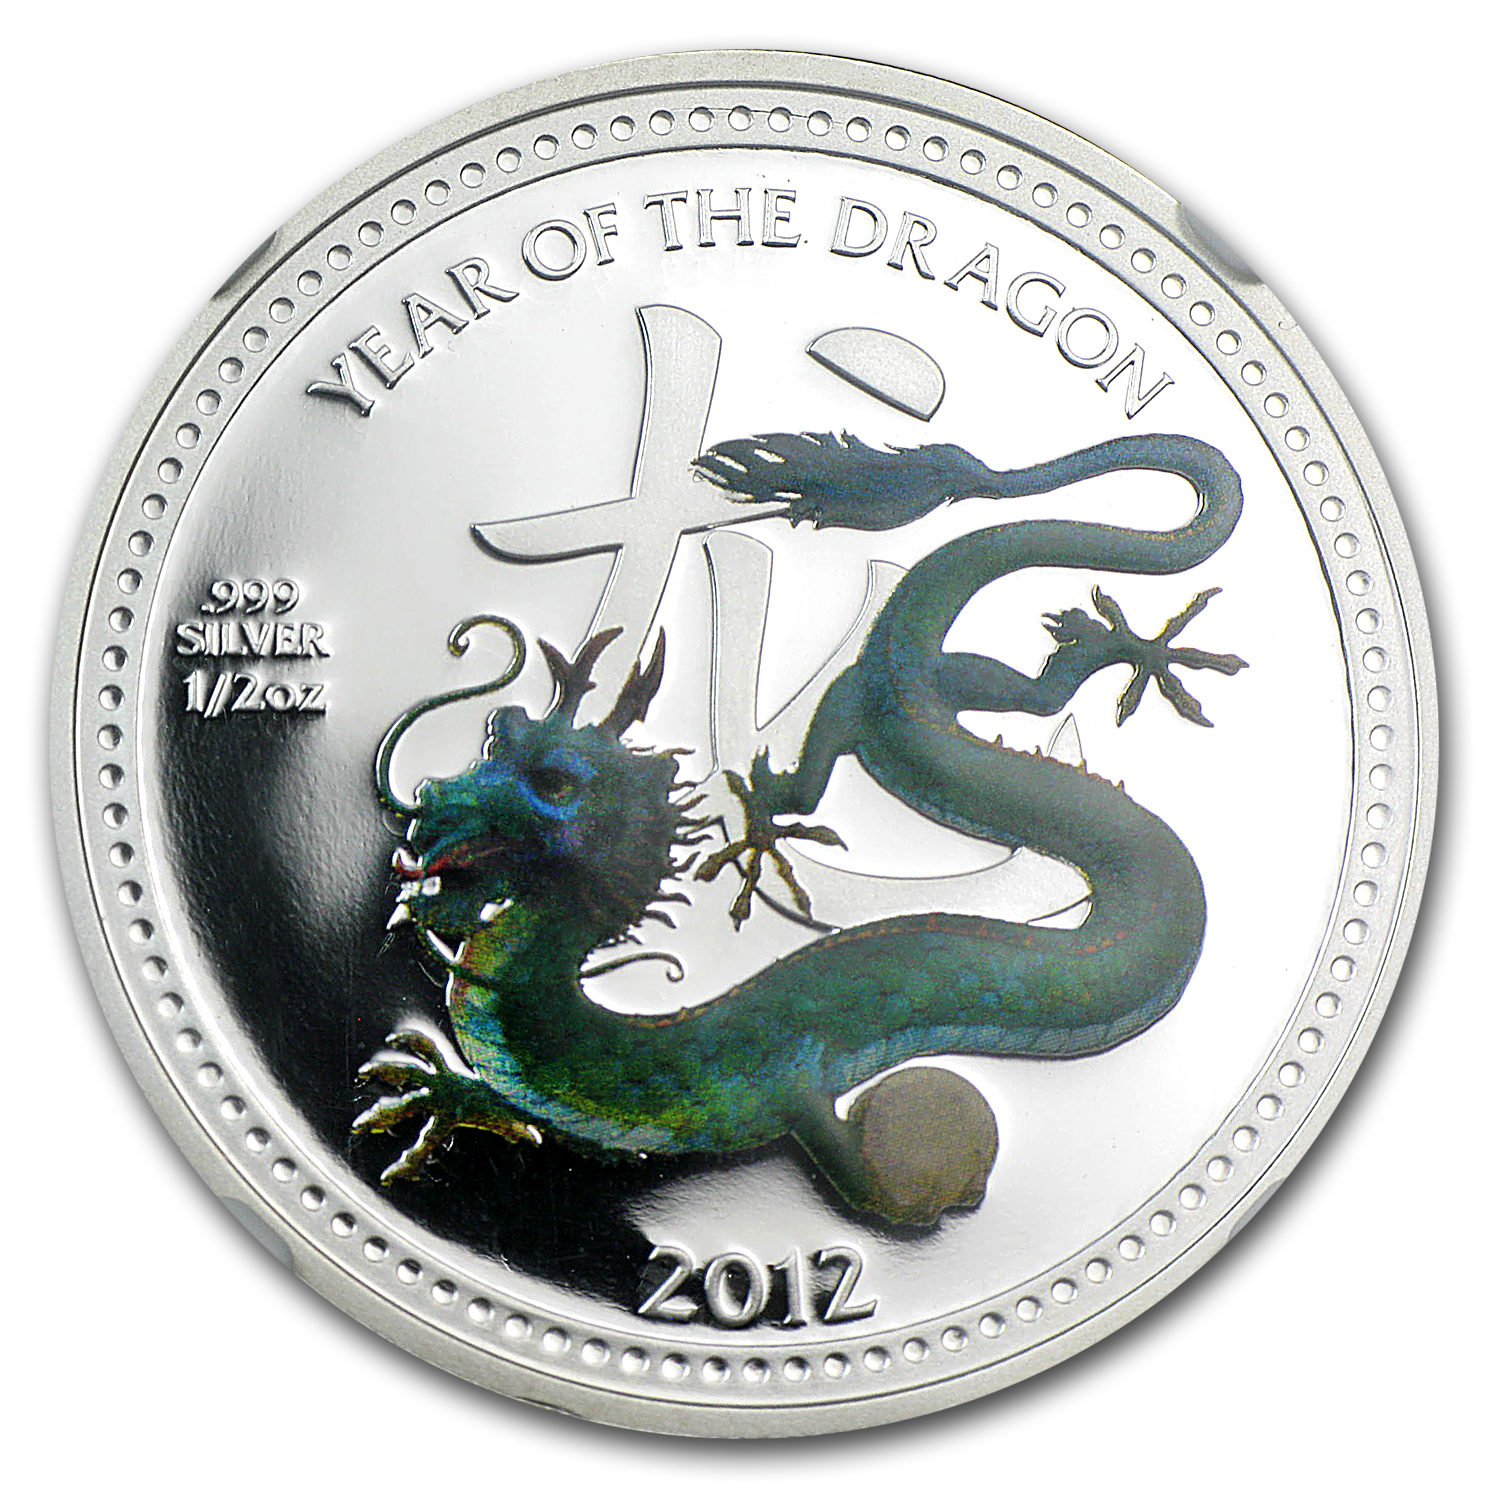 2012 1/2 oz Silver Niue $2 Pearl Dragon PF-69 NGC (Colorized)